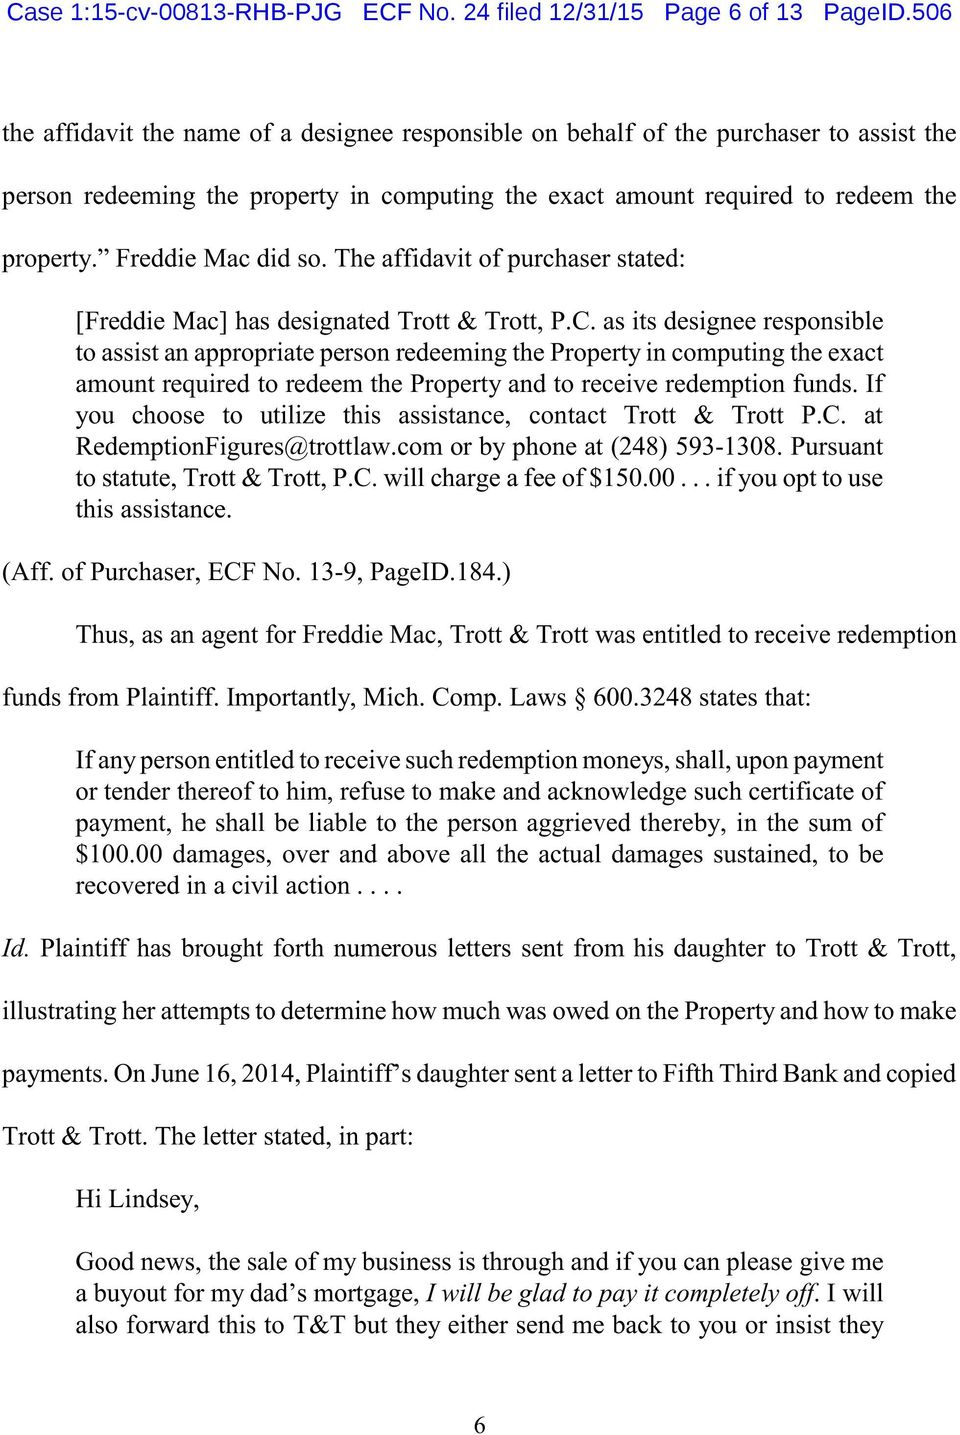 Freddie Mac did so. The affidavit of purchaser stated: [Freddie Mac] has designated Trott & Trott, P.C.